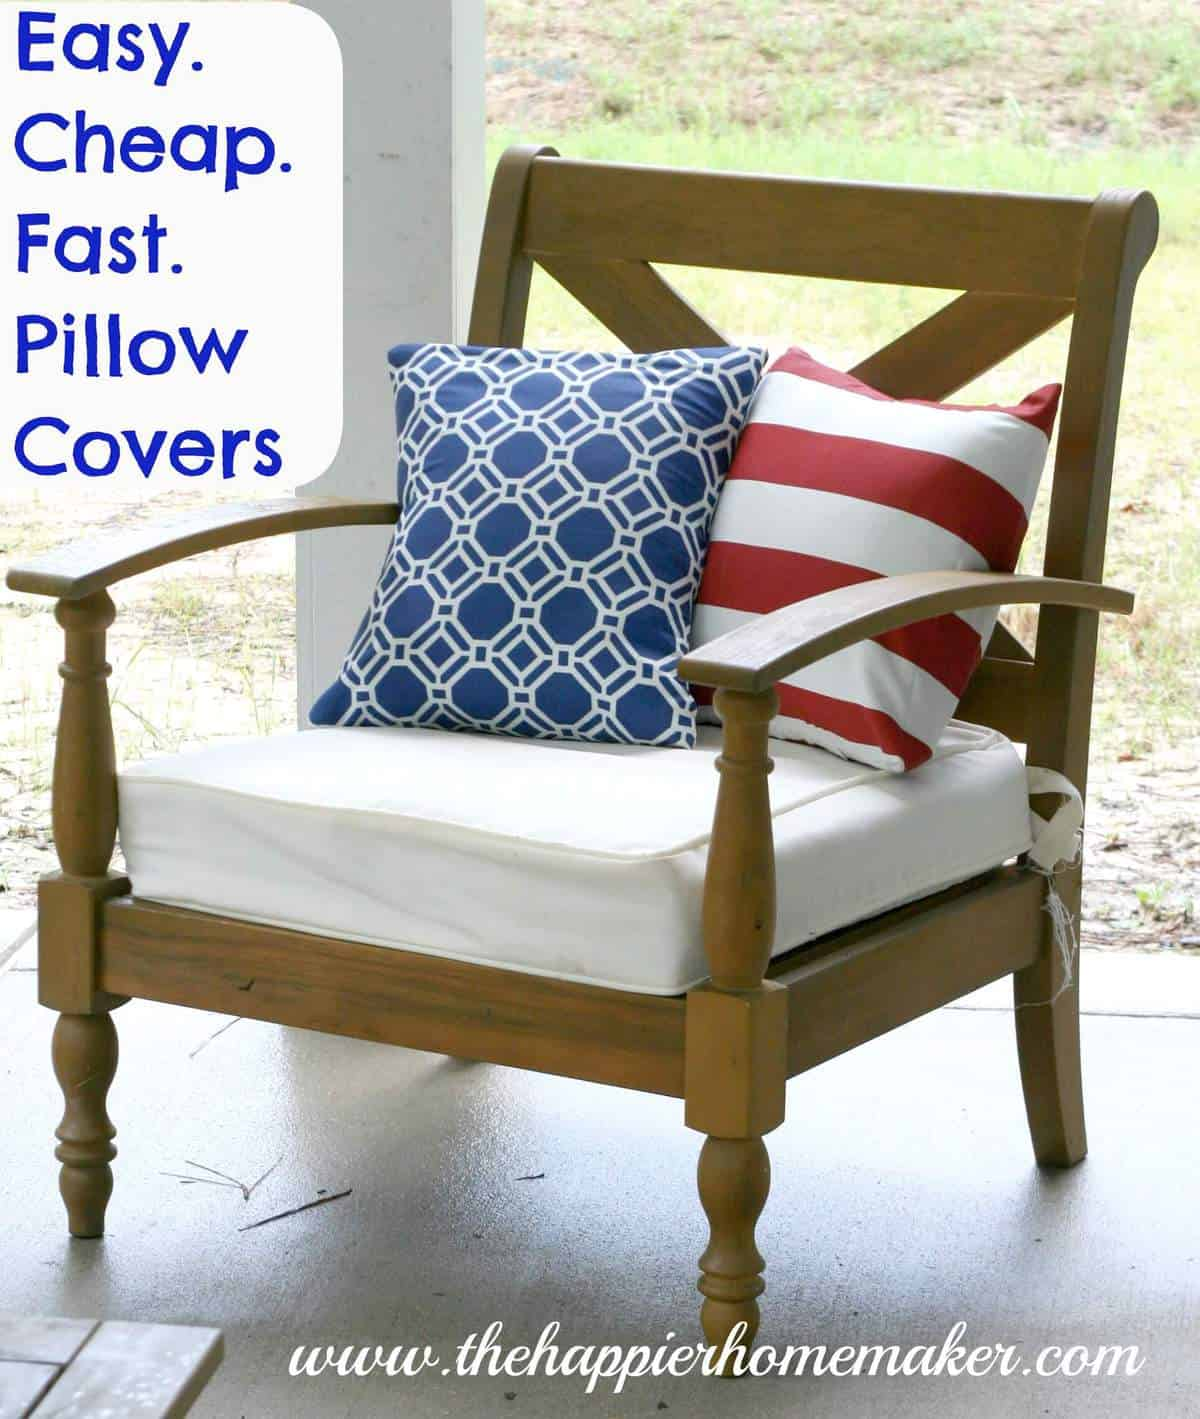 Easy. Cheap. Fast. DIY Pillow Covers.